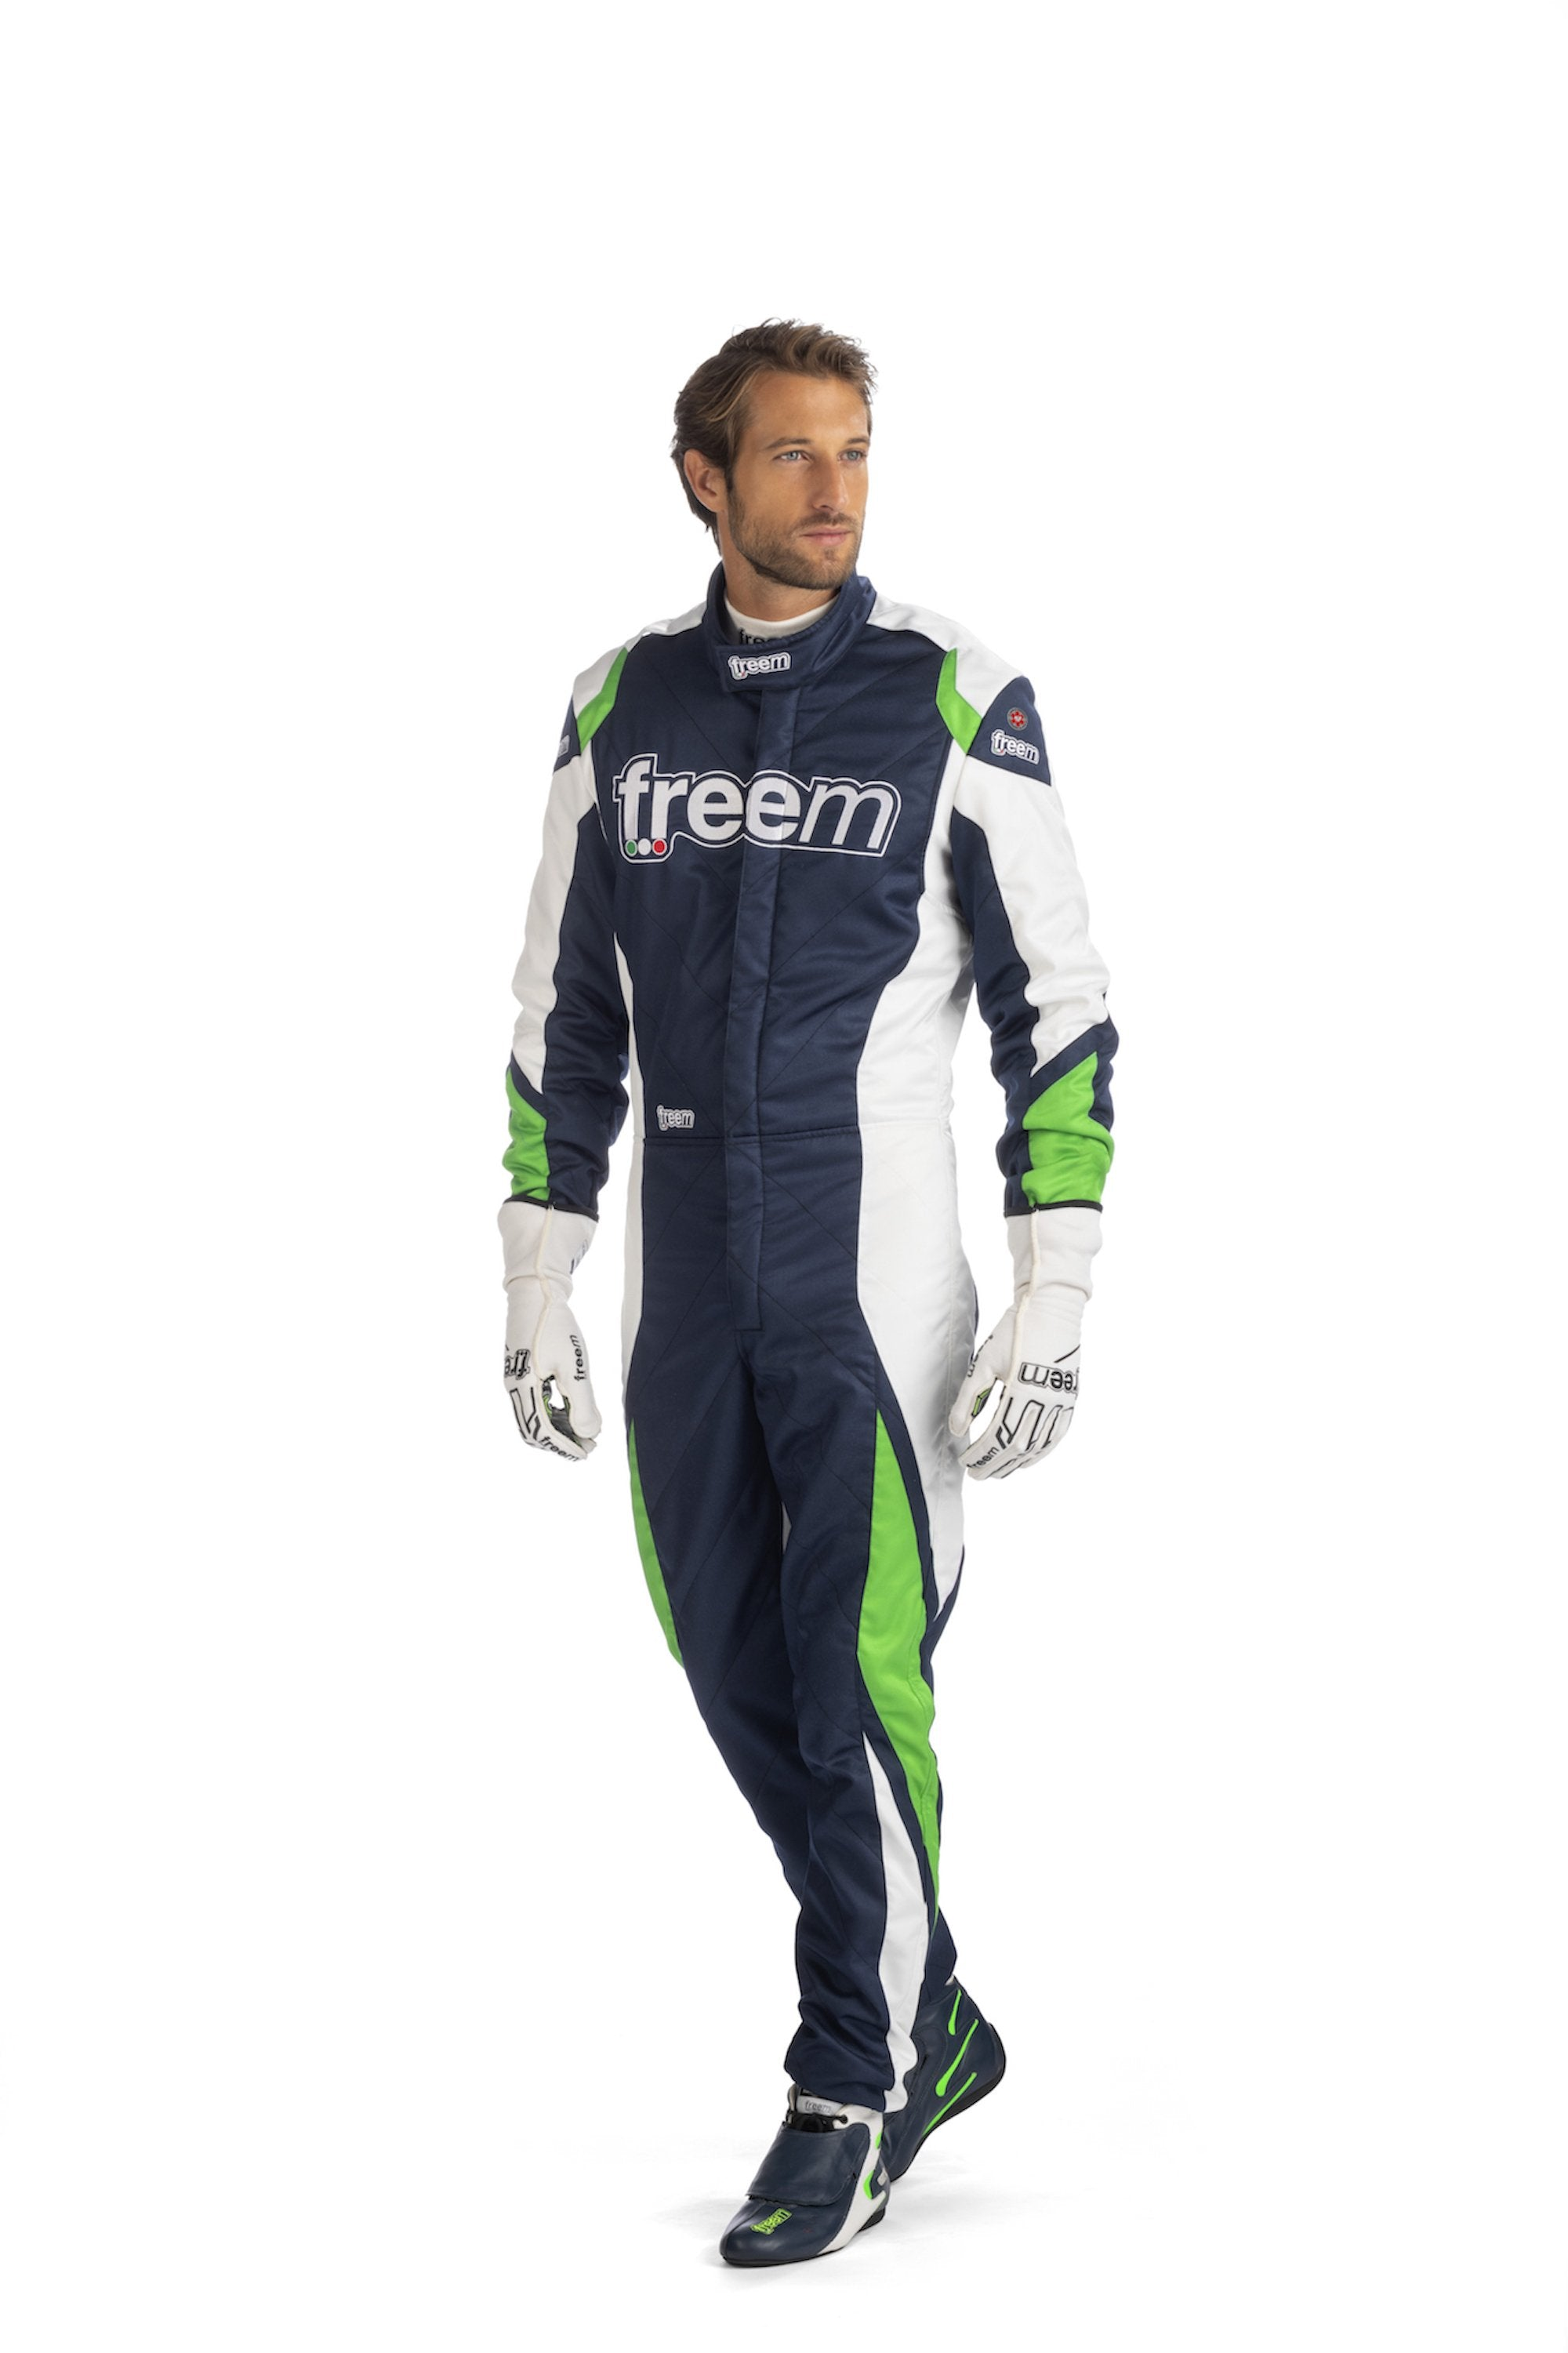 A20 Motorsport suits Freem